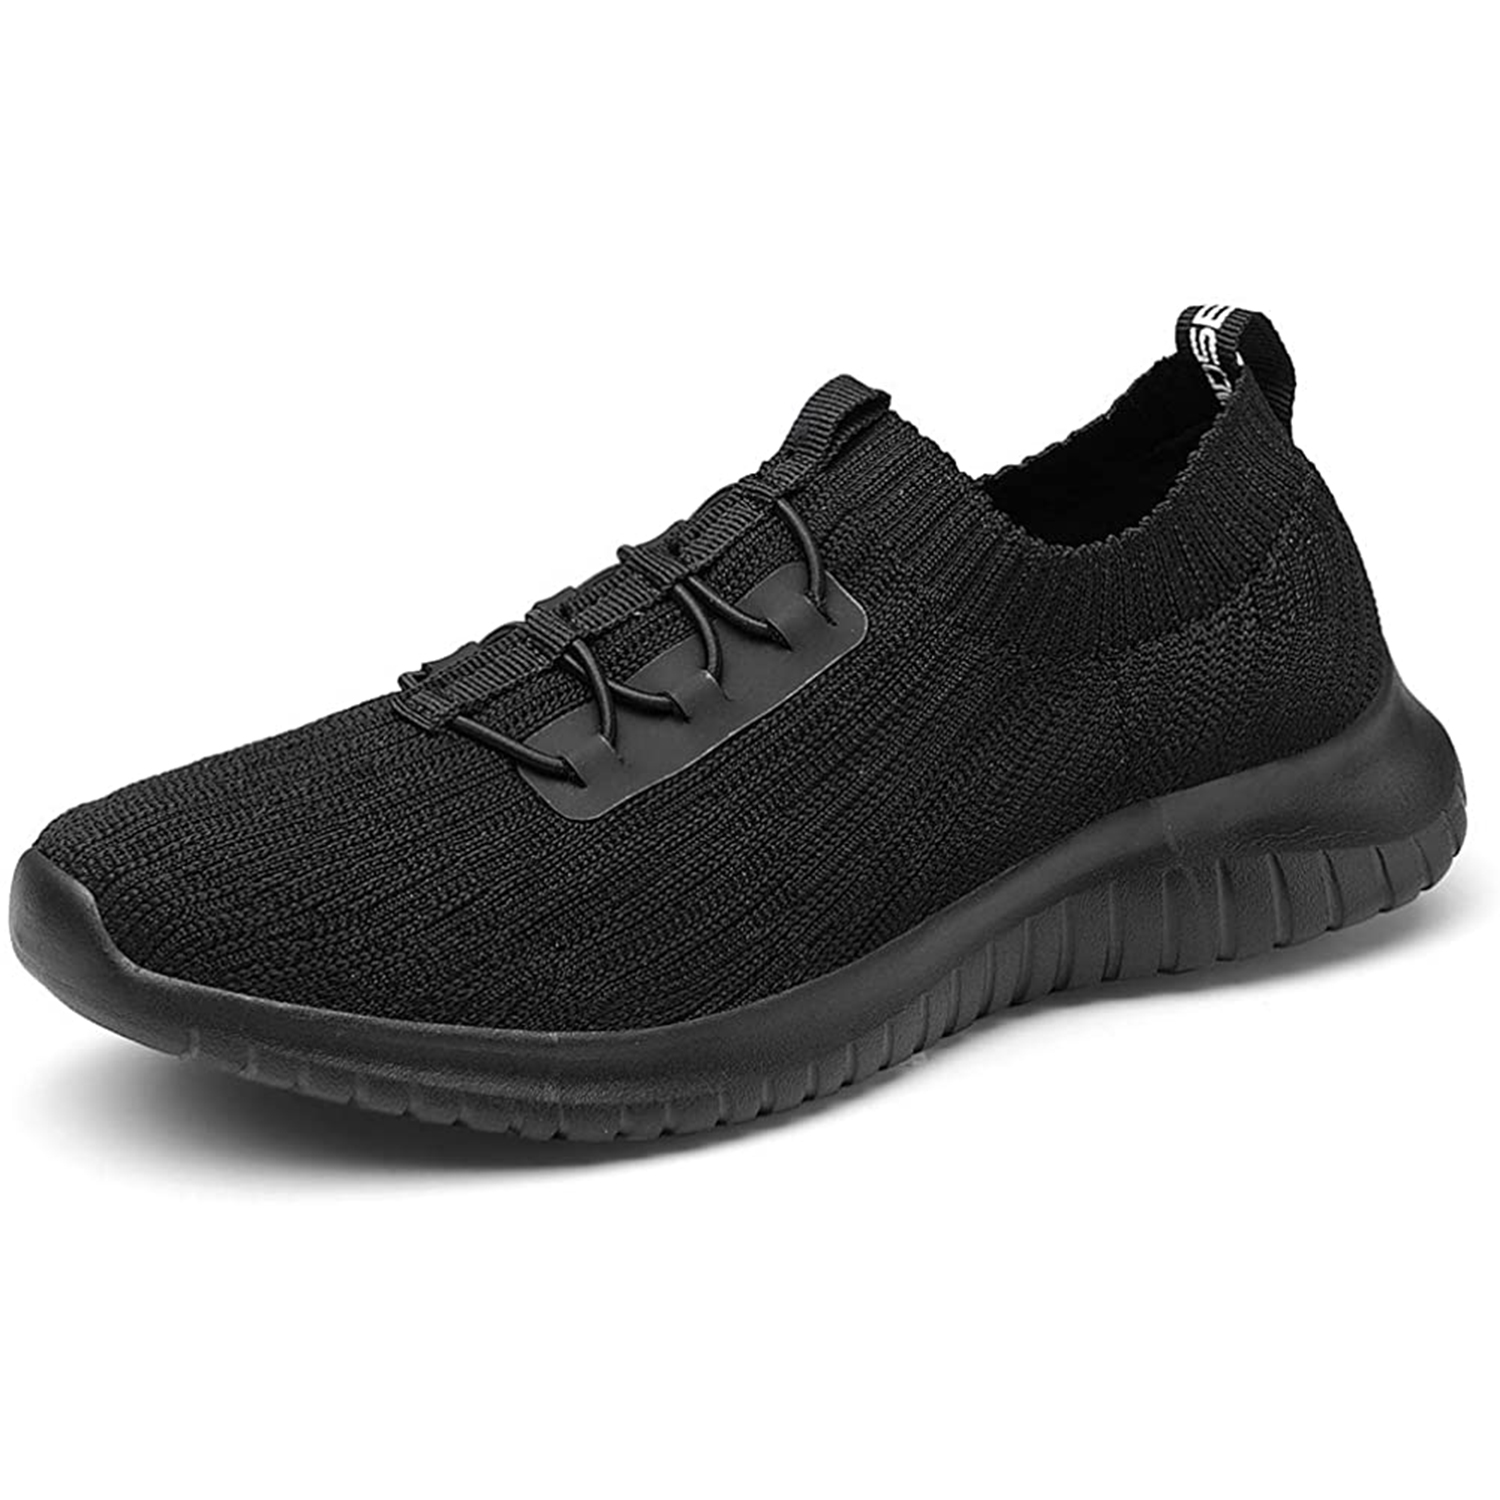 Slip On Walking Shoes Lightweight Casual Running Sneakers